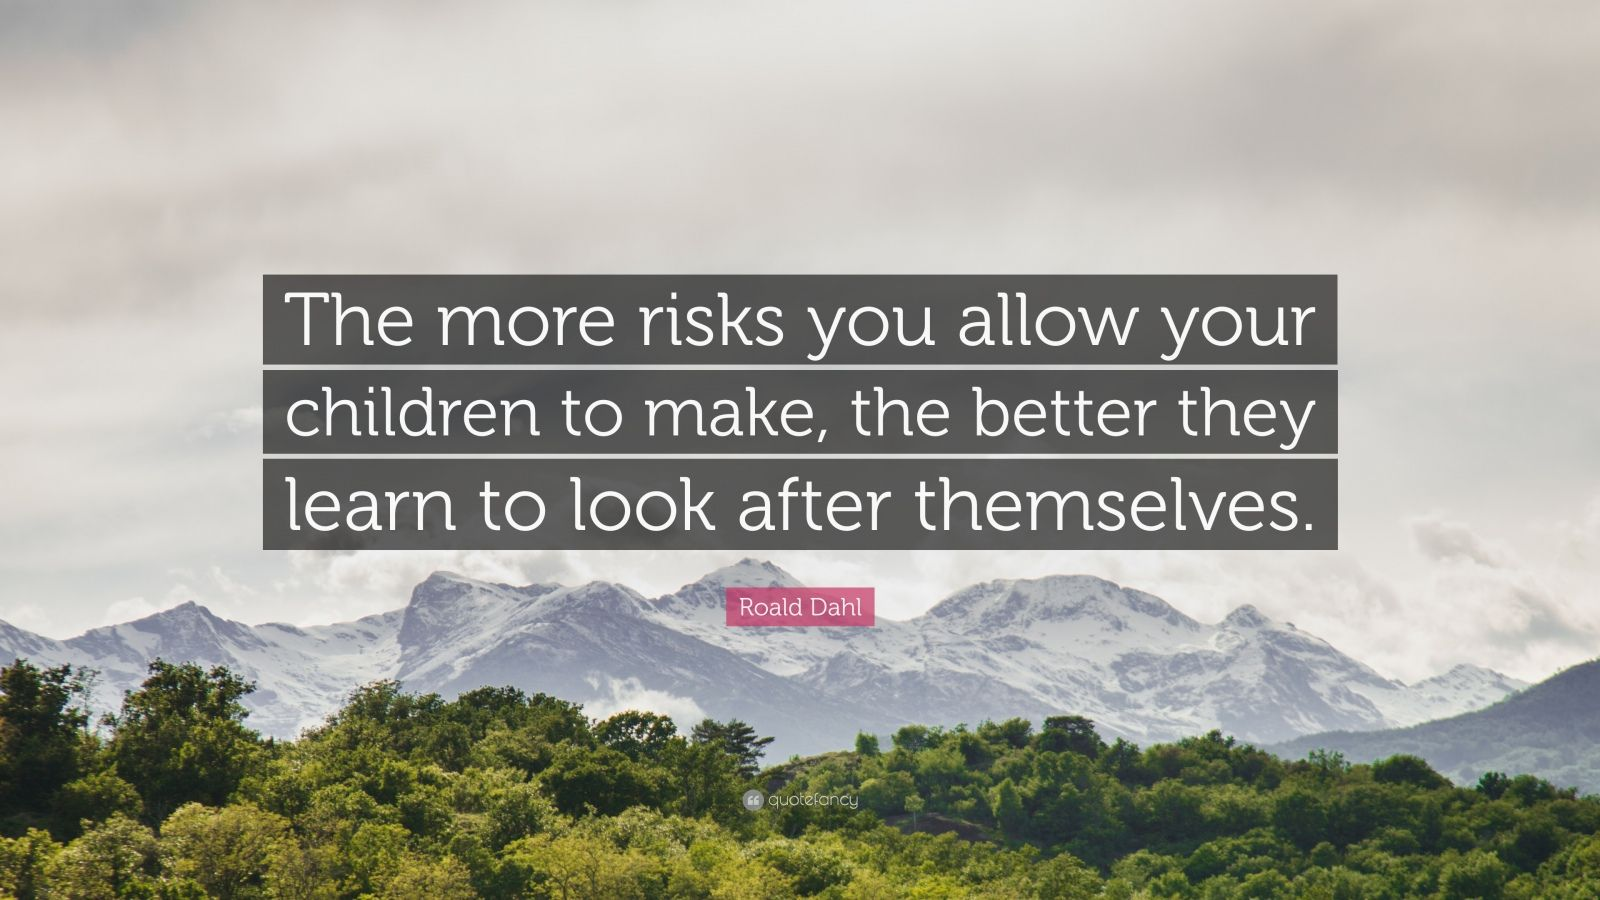 """Roald Dahl Quote: """"The more risks you allow your children to make, the better they learn to look after themselves."""""""